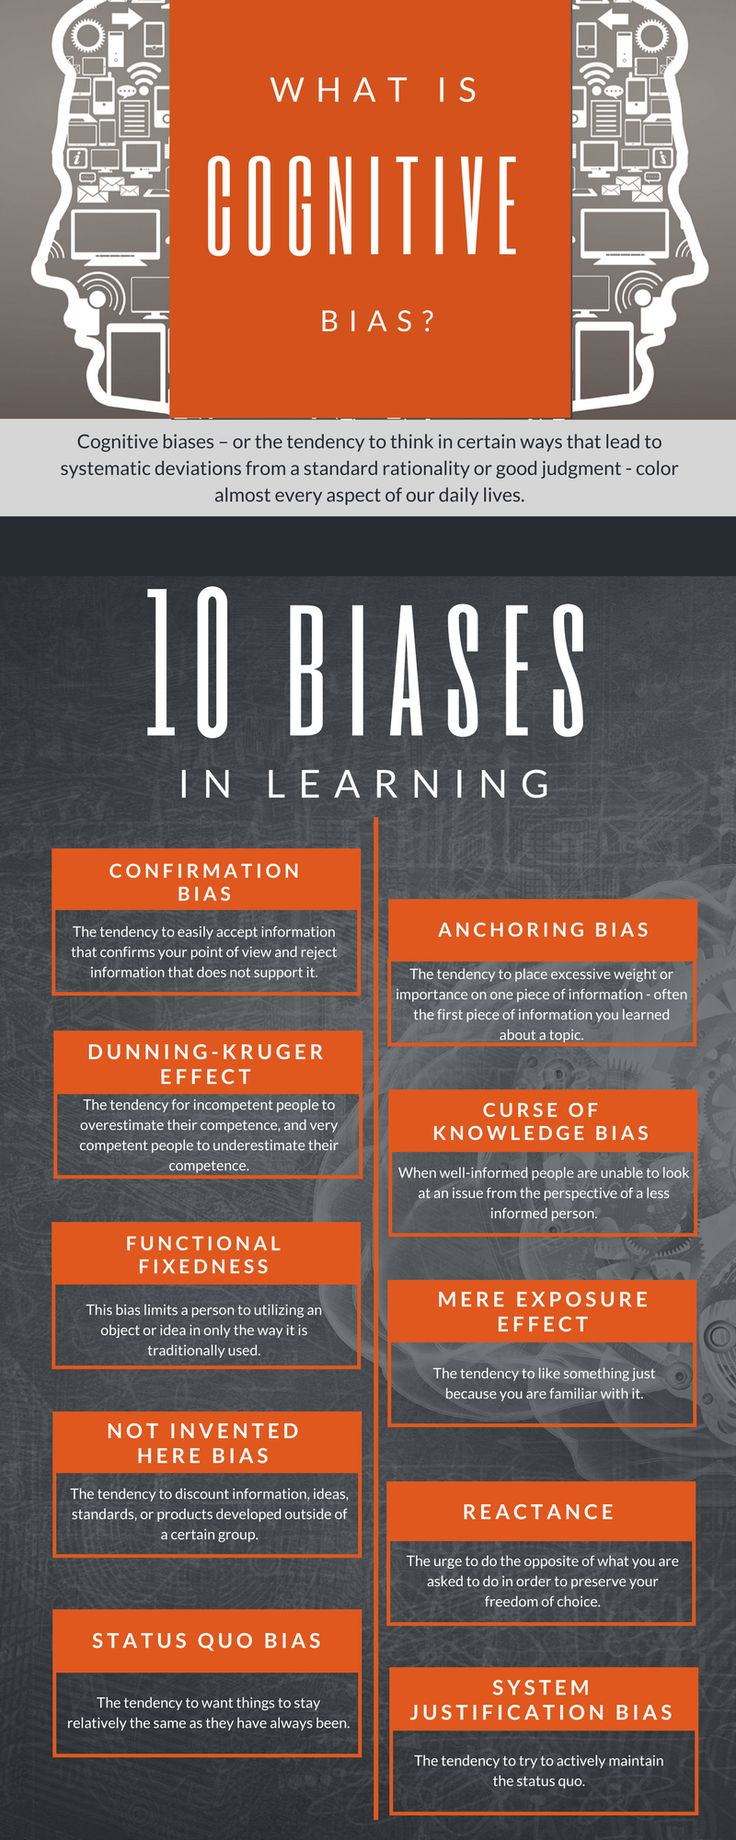 Cognitive Bias In Learning Infographic - https://elearninginfographics.com/cognitive-bias-learning-infographic/